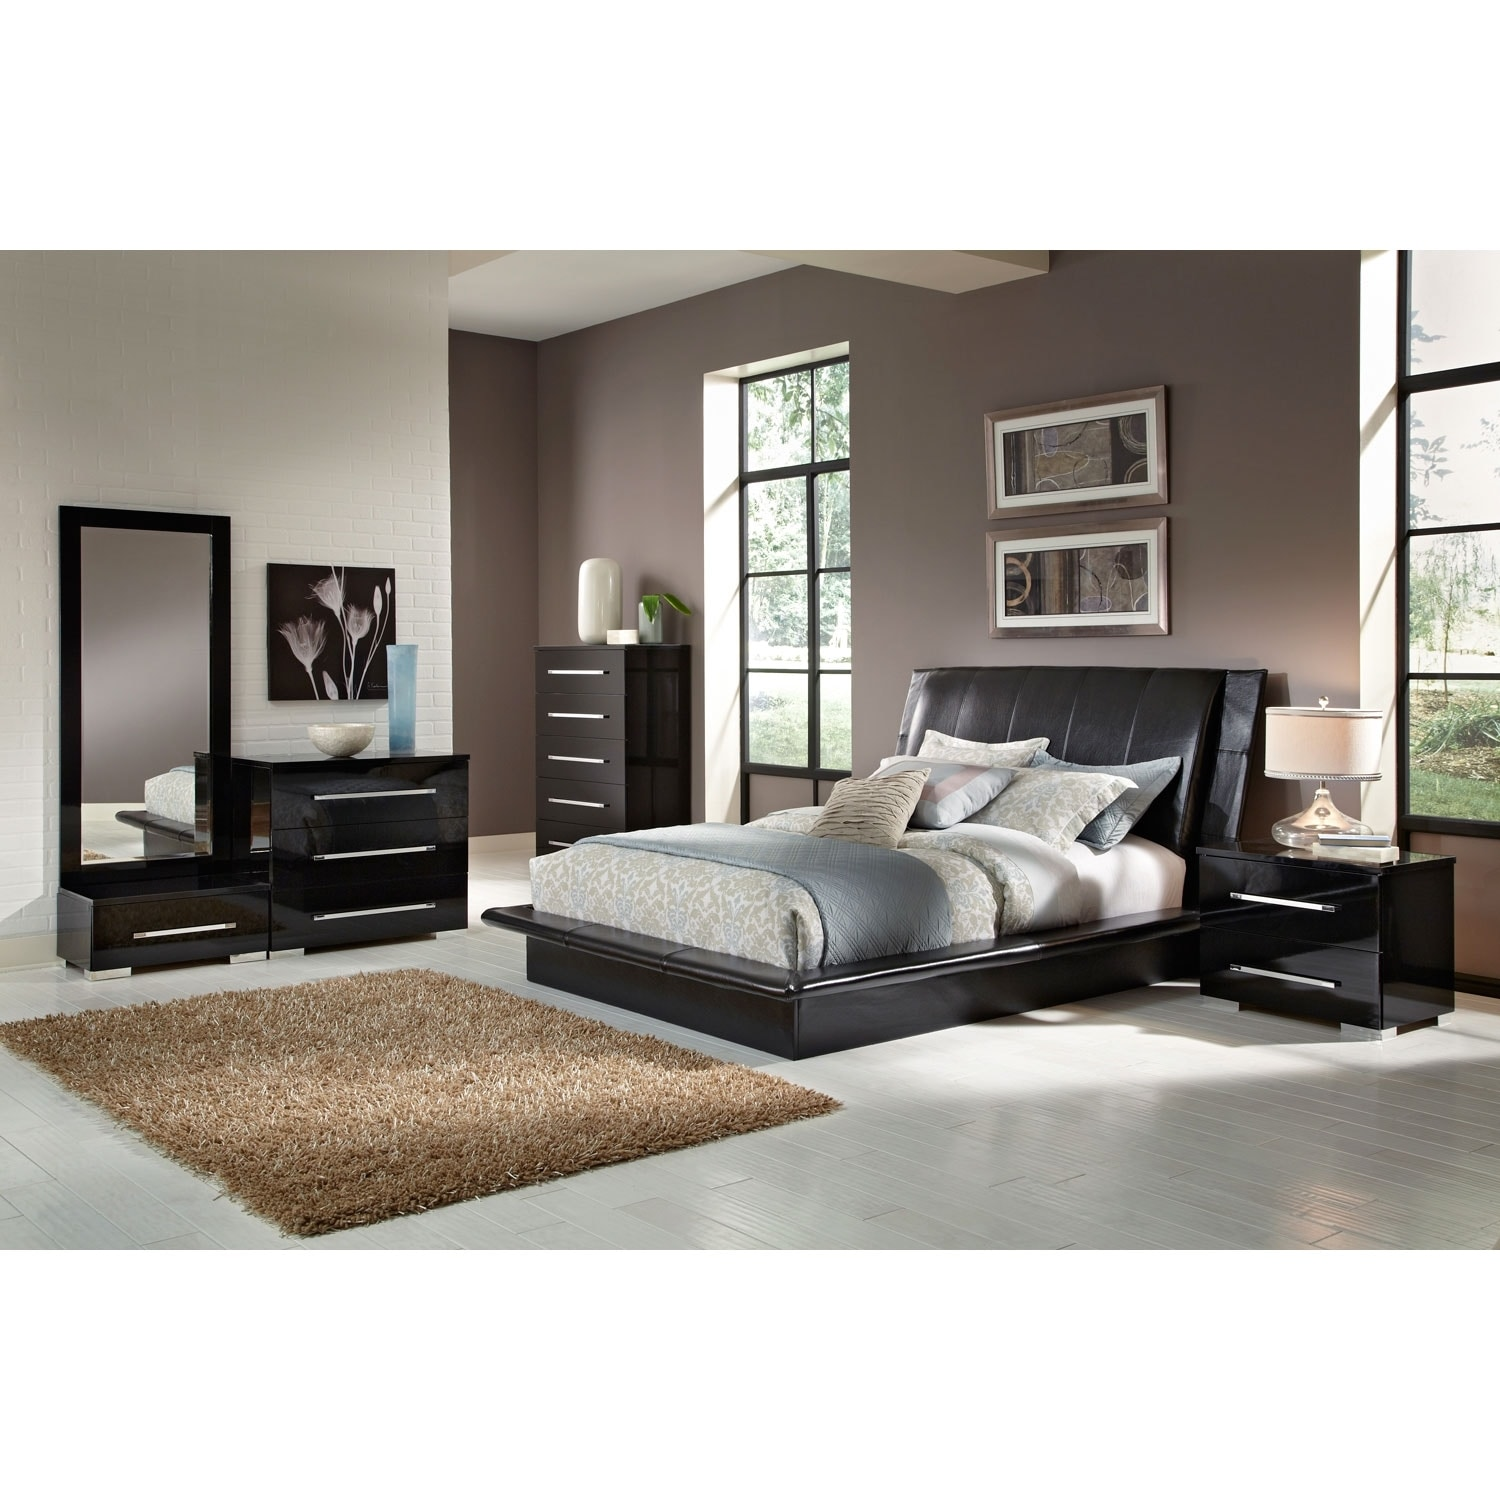 Bedroom Sets Value City dimora 7-piece king upholstered bedroom set - black | value city